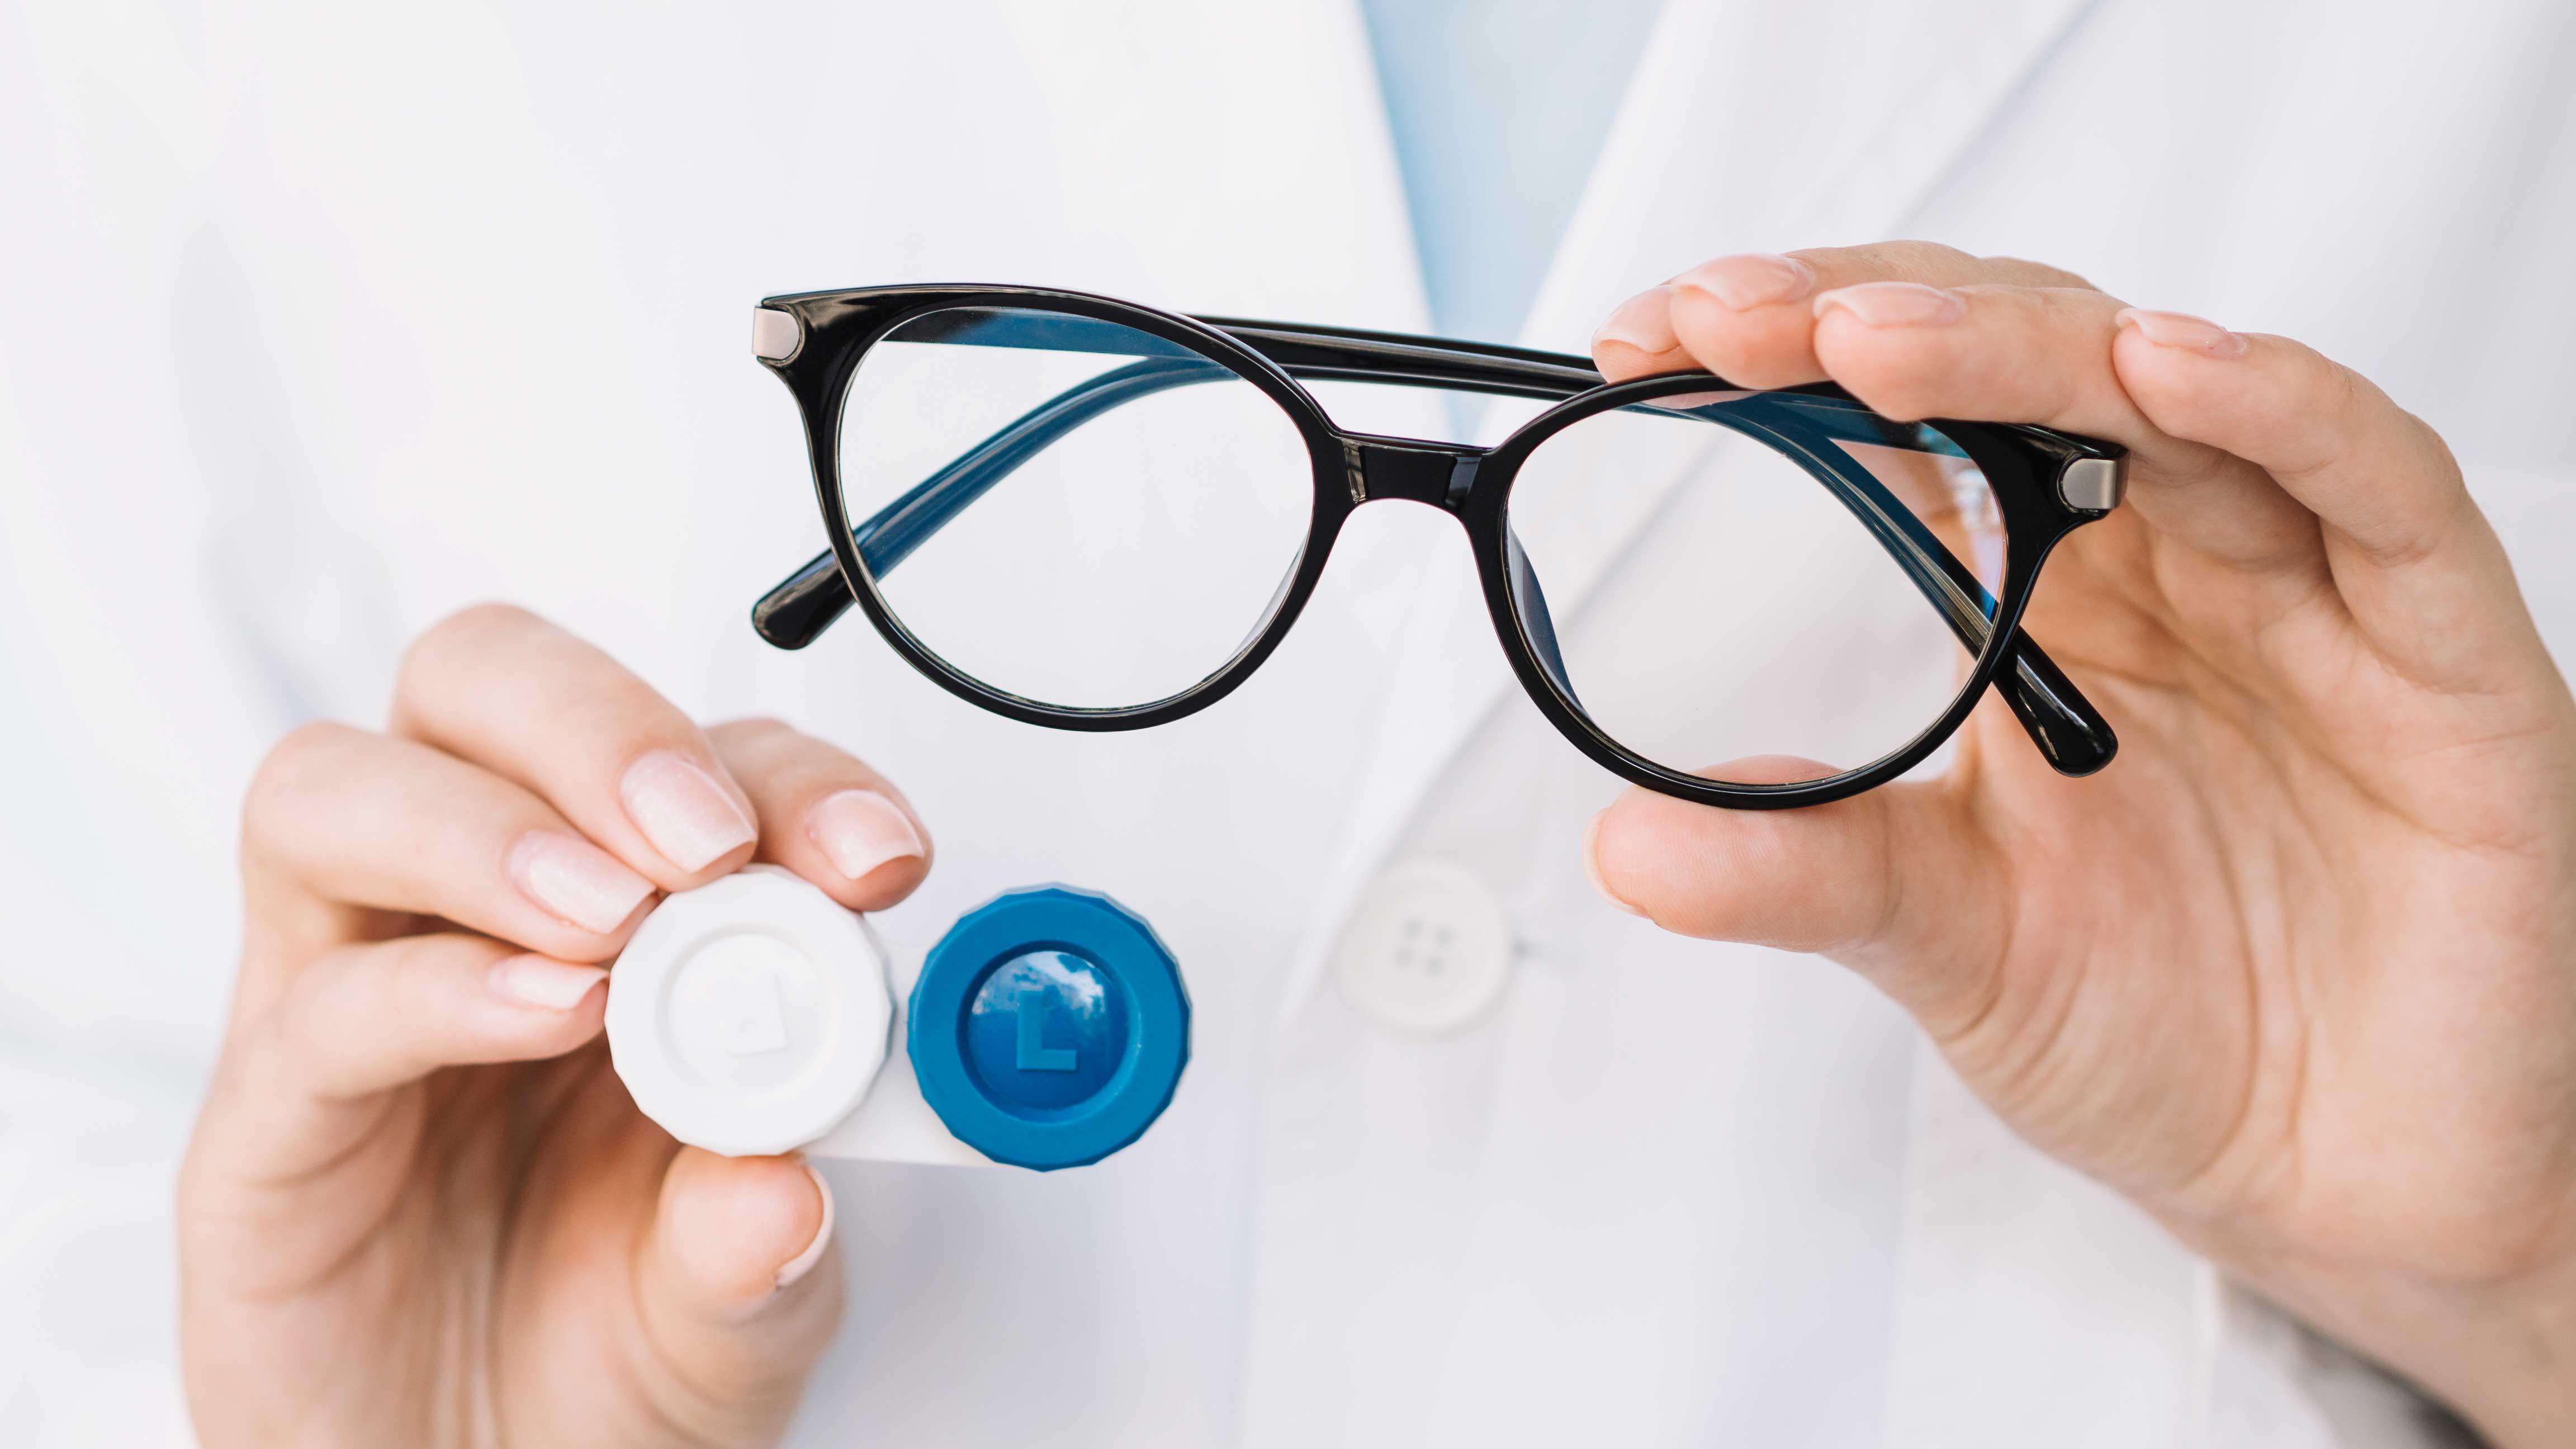 Eye-Doctors suggest people switch from lenses to glasses to avoid COVID-19